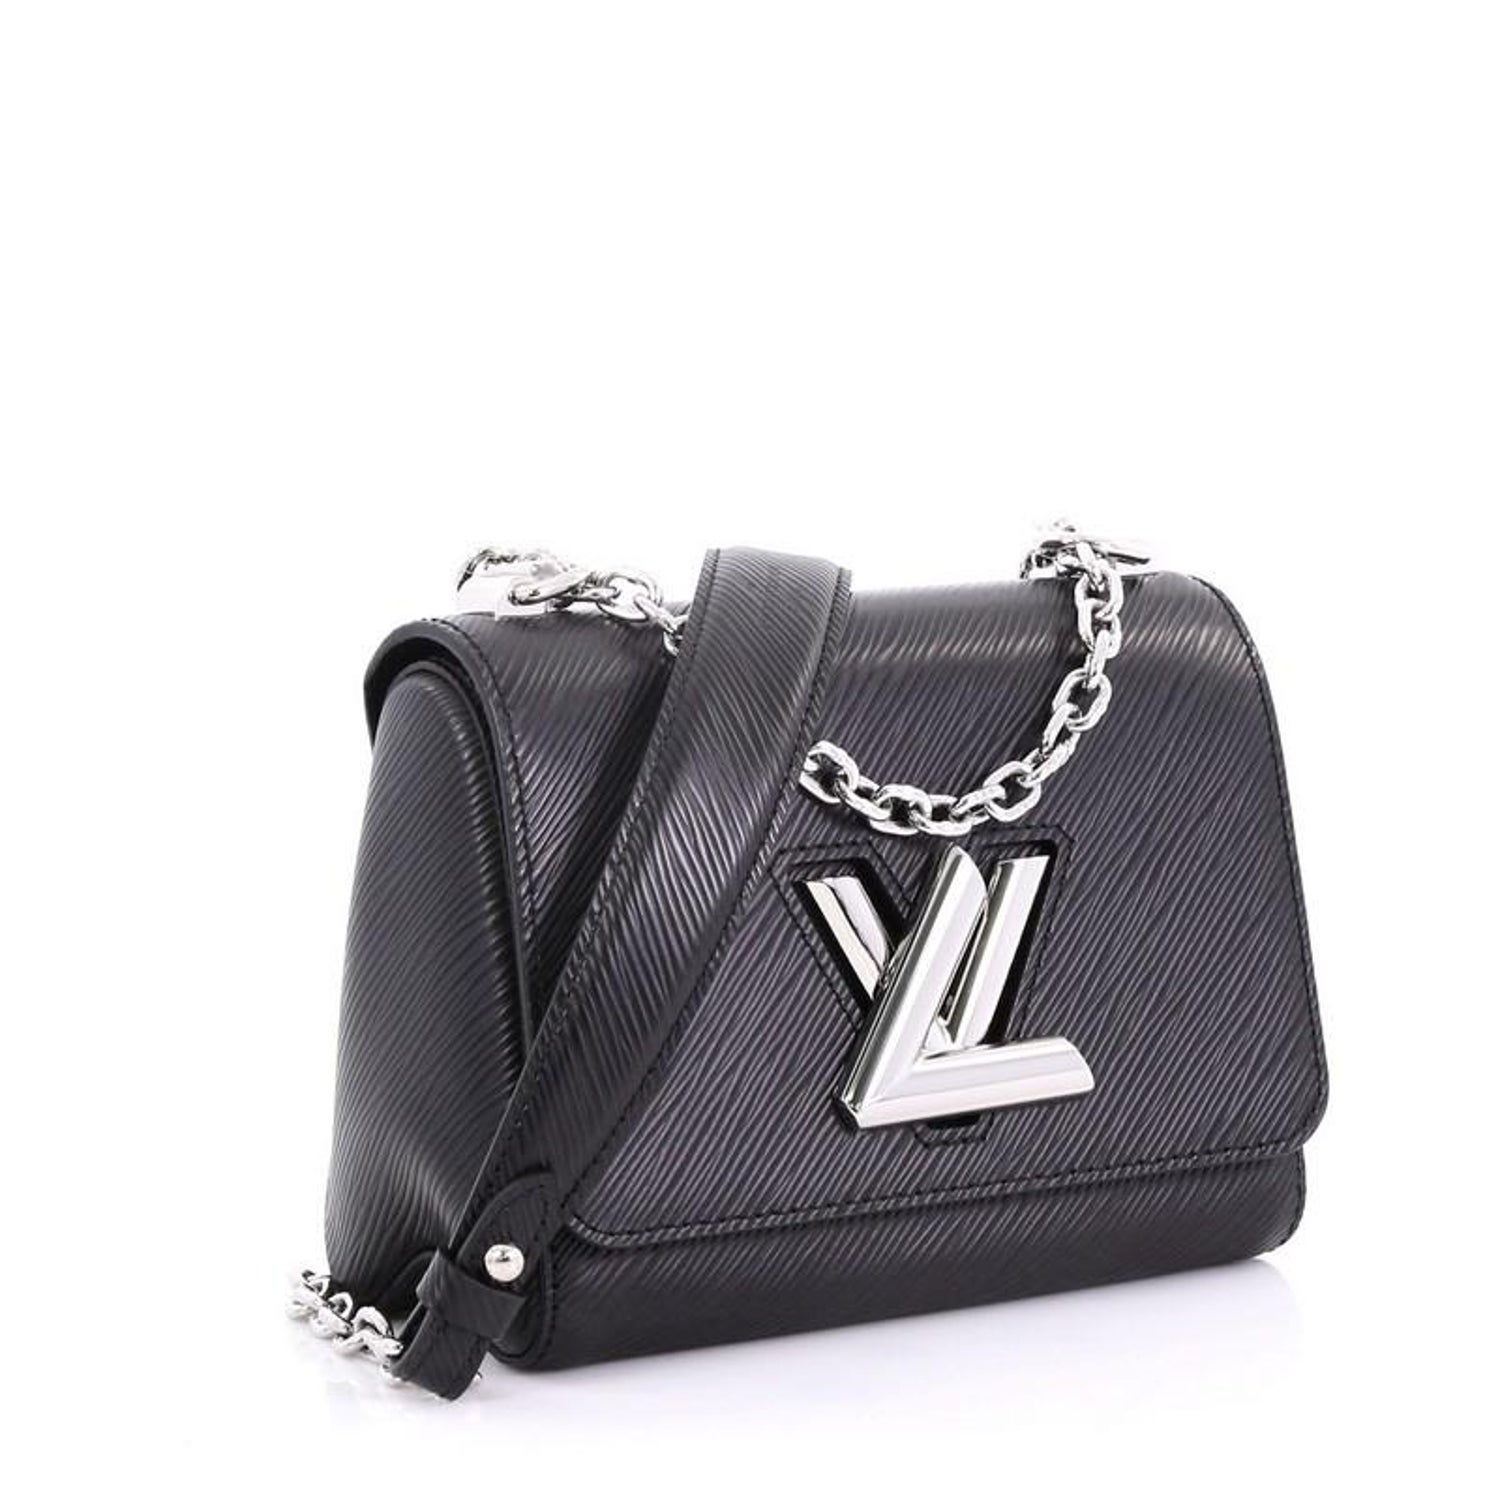 c82145495e6c Louis Vuitton Twist Handbag Epi Leather PM For Sale at 1stdibs